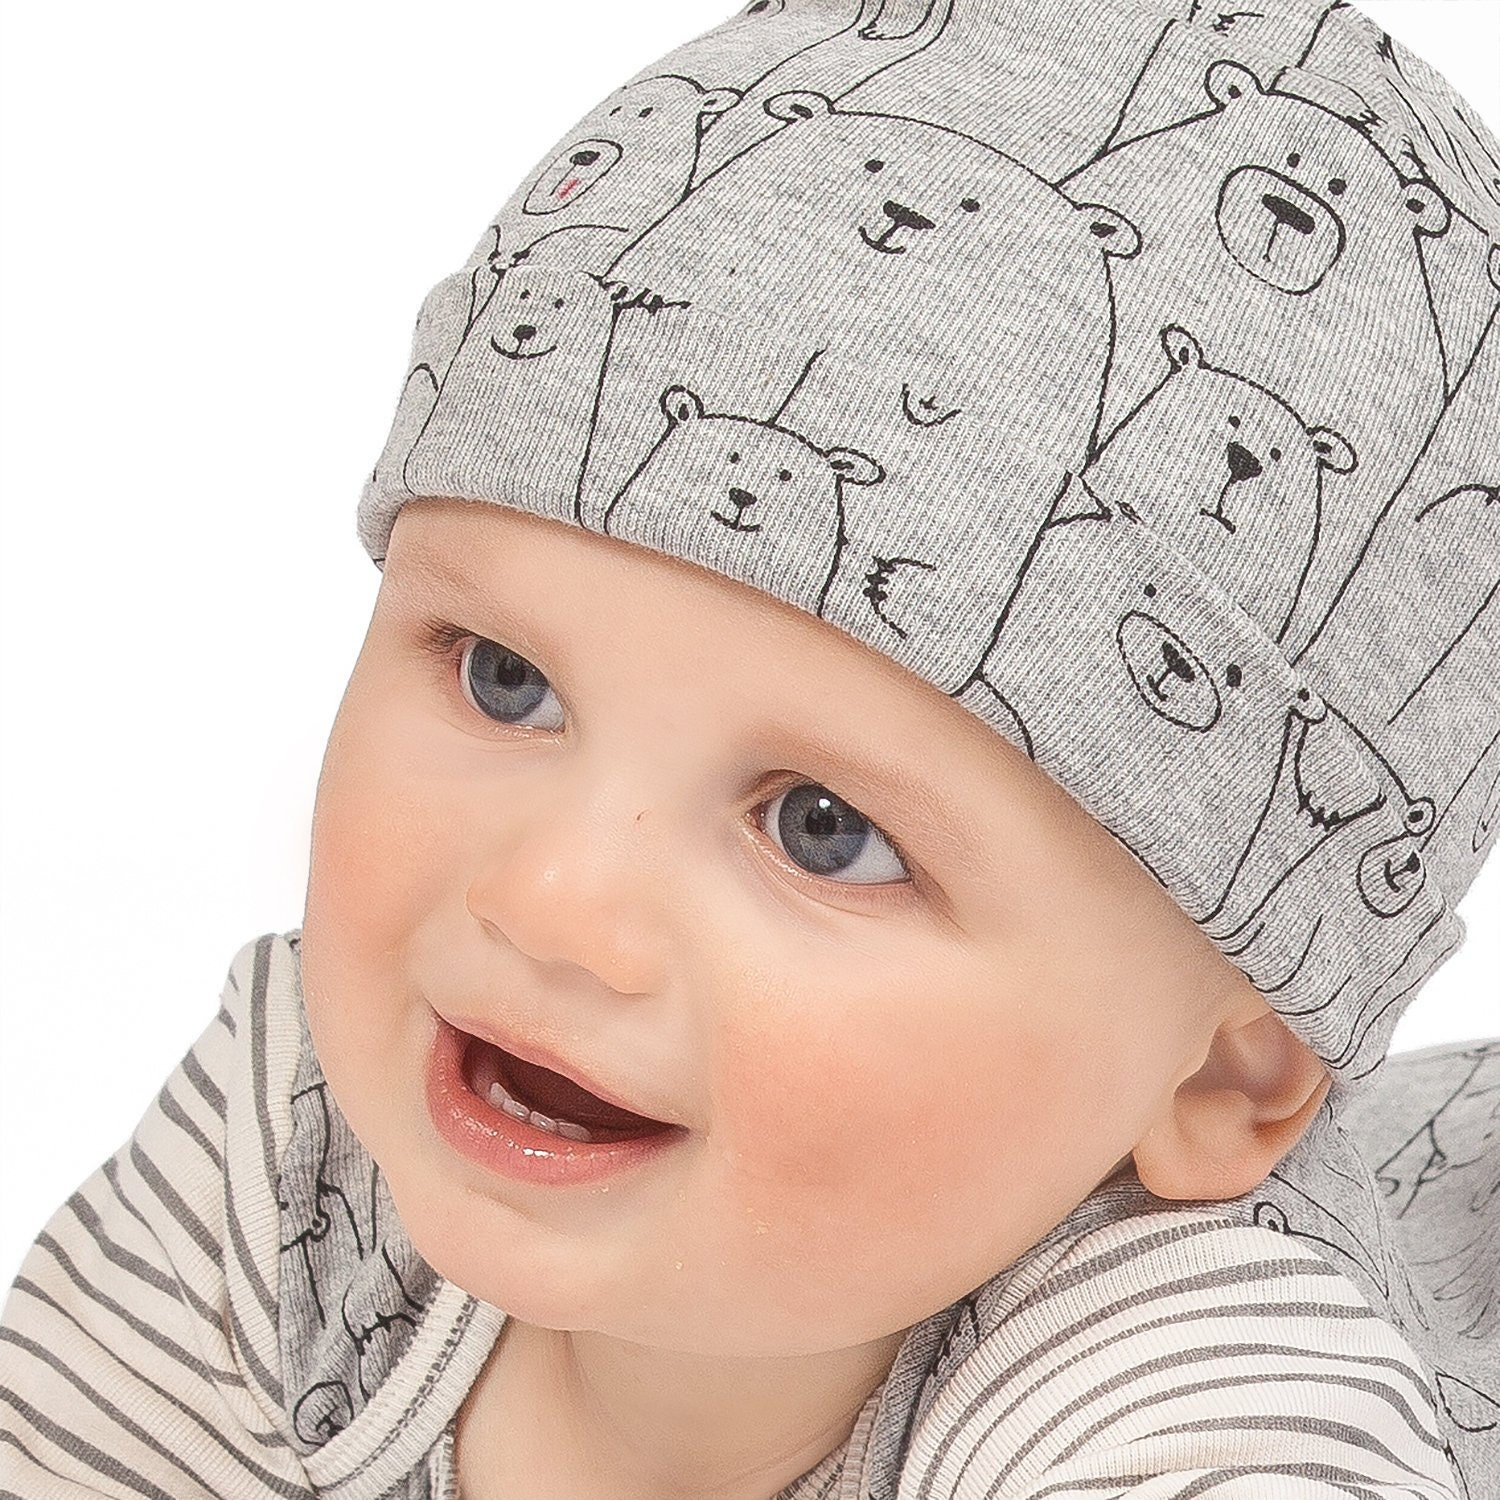 ... Baby Girl Boy Hats Gray Bears Tesa Babe. 1 d349845bc0f